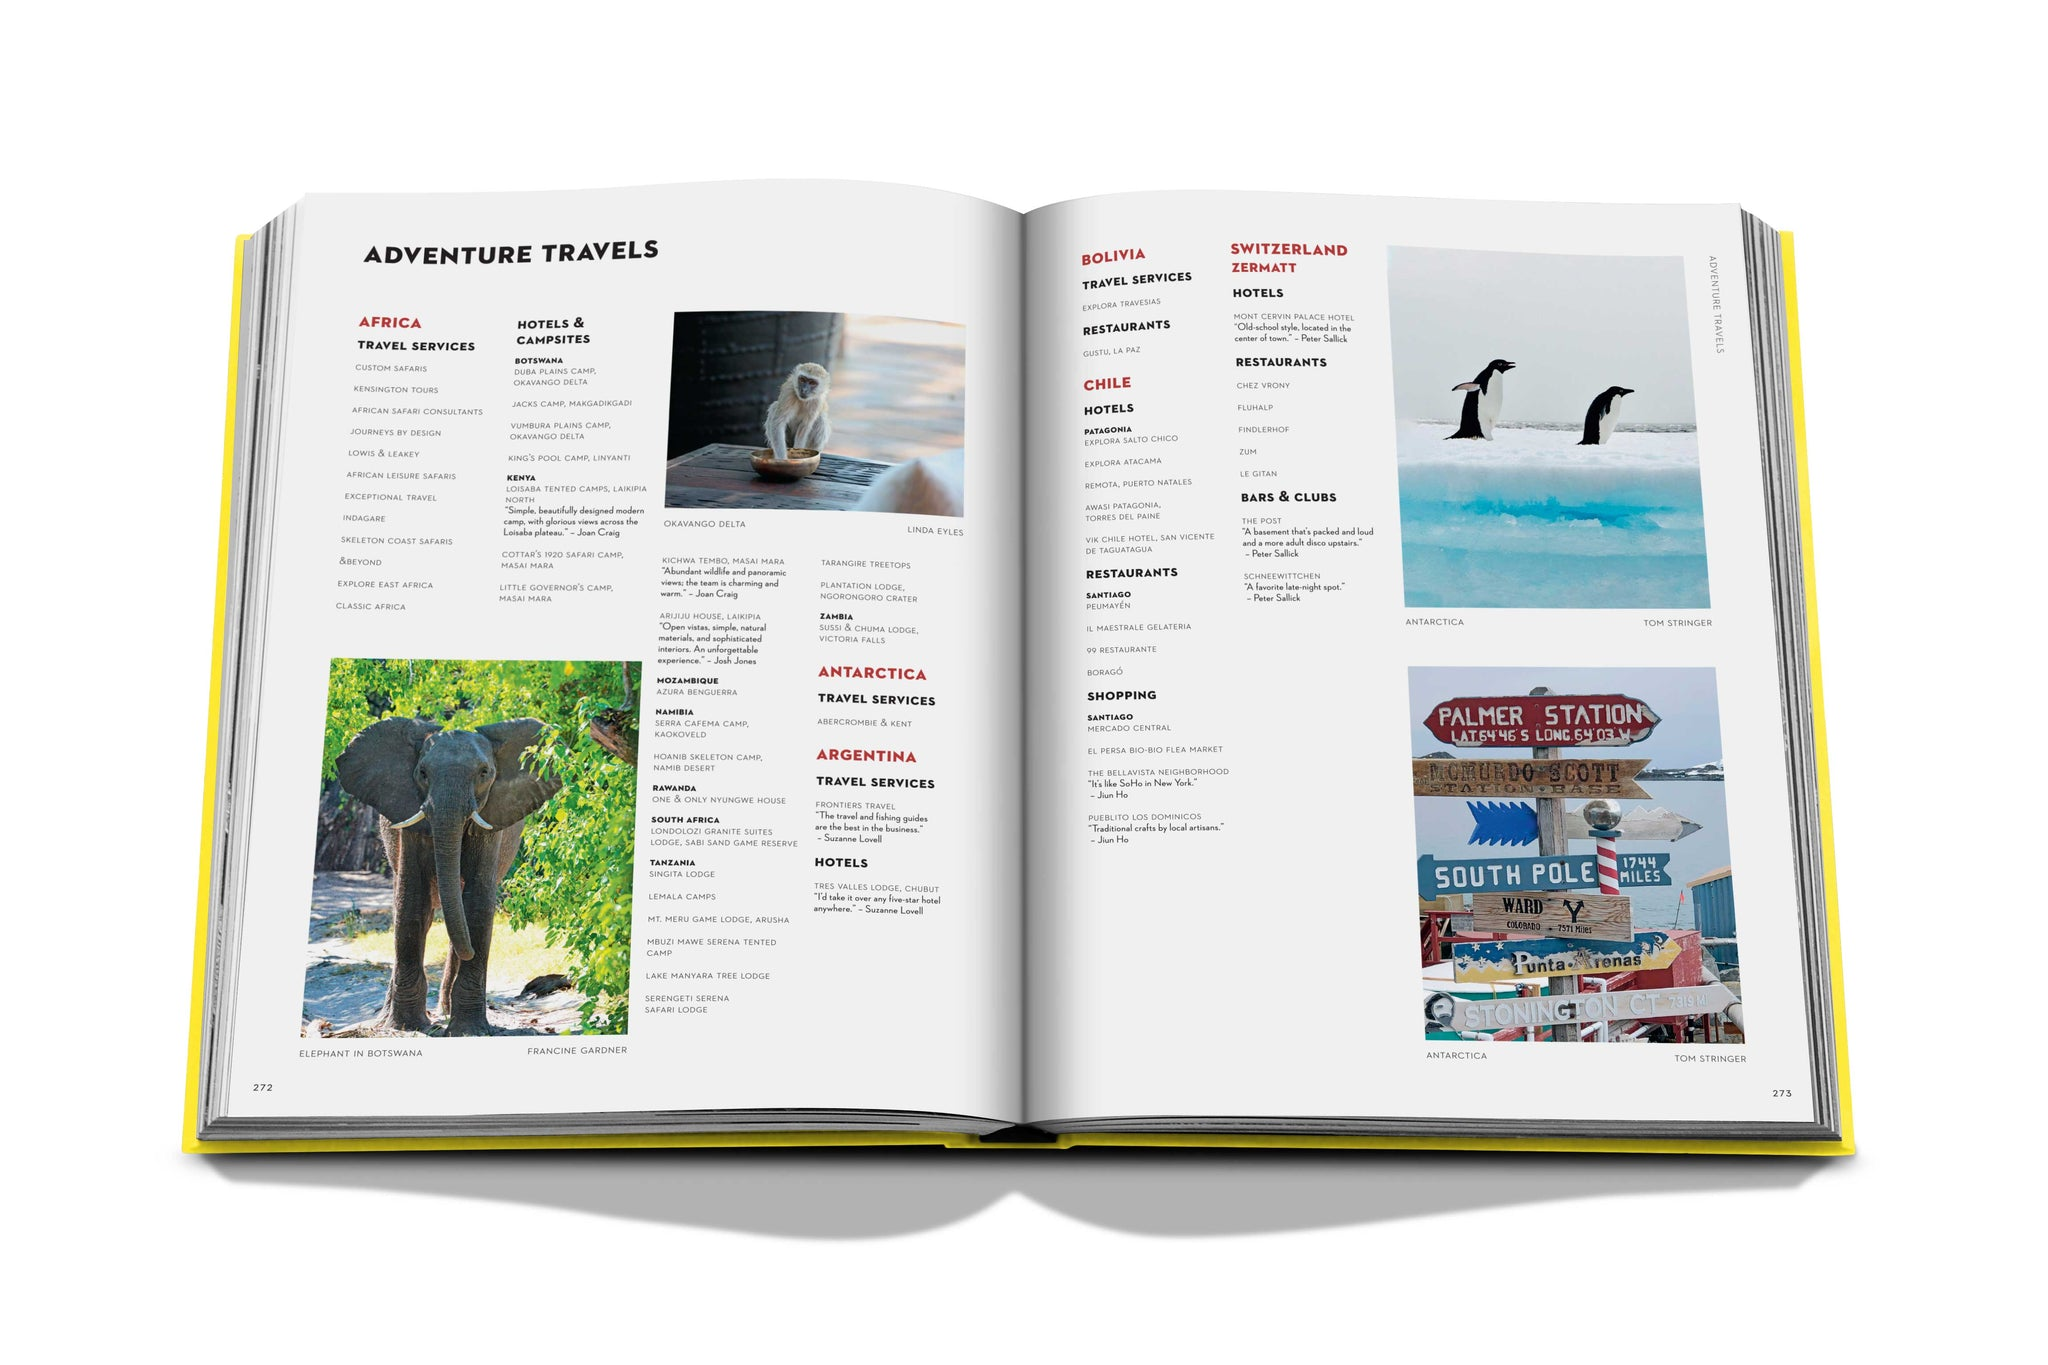 ASSOULINE Books Travel by Design